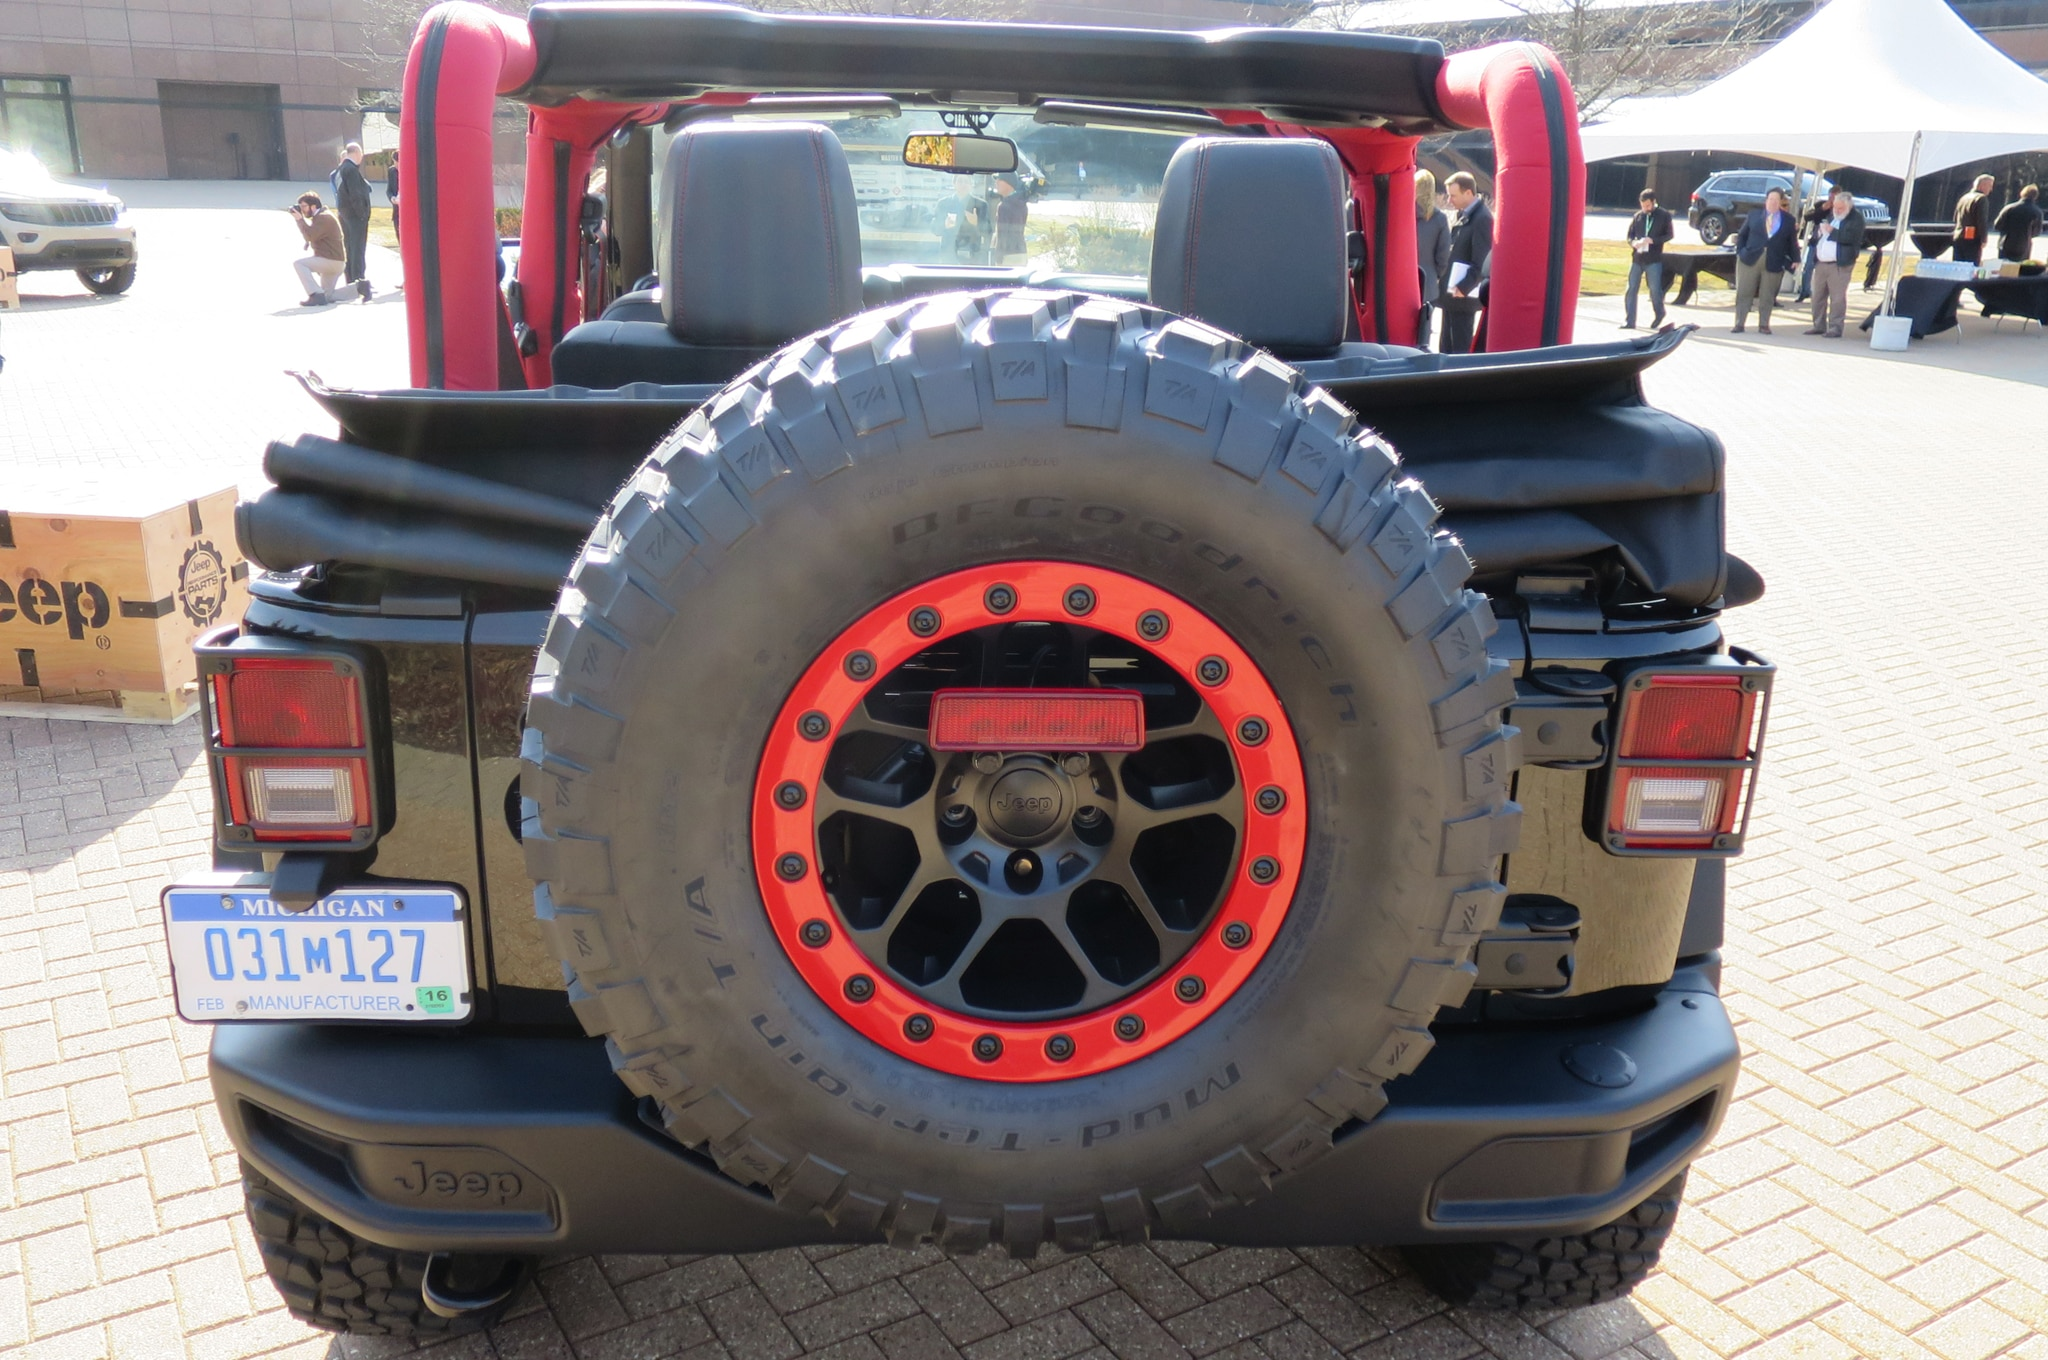 Jeep Wrangler Level Red Concept spare tire